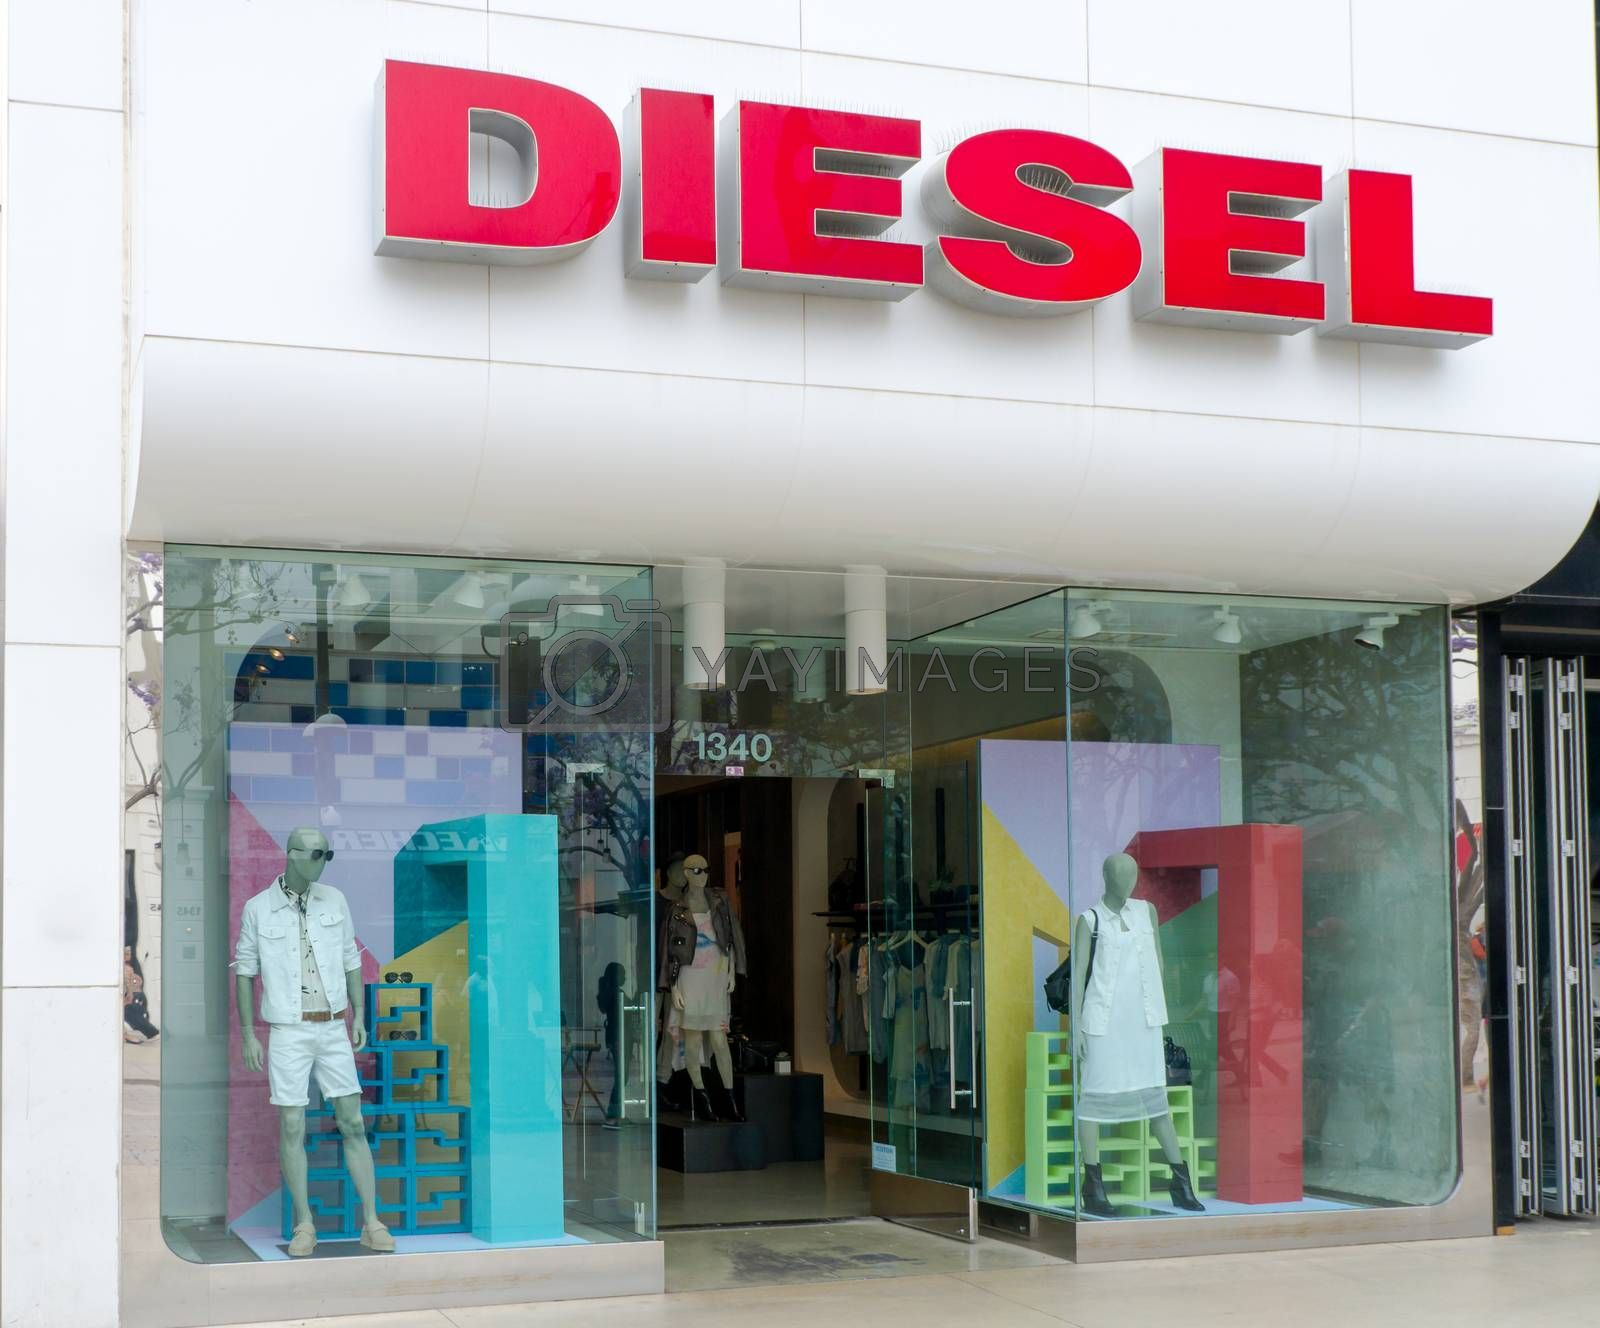 SANTA MONICA, CA/USA - MAY 12, 2015: Diesel store exterior and sign. Diesel is an Italian retail clothing company selling denim, and other clothing and accessories.